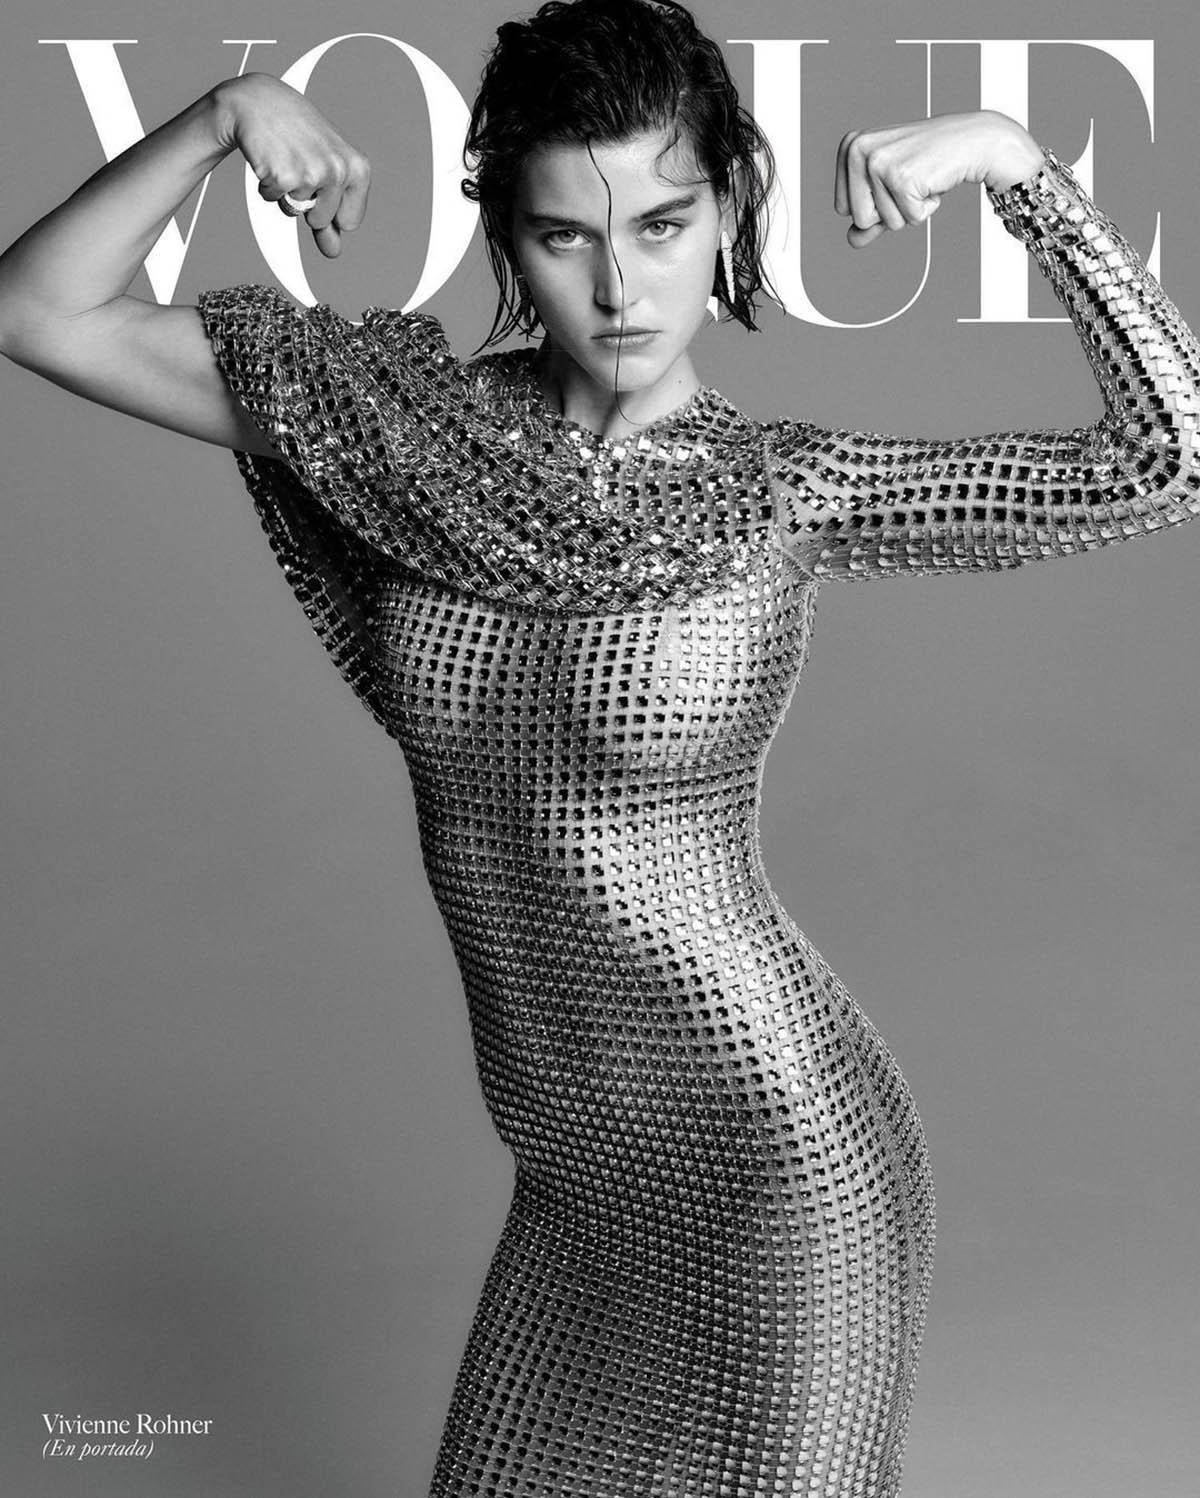 Vivienne Rohner covers Vogue Latin America March 2021 by Chris Colls